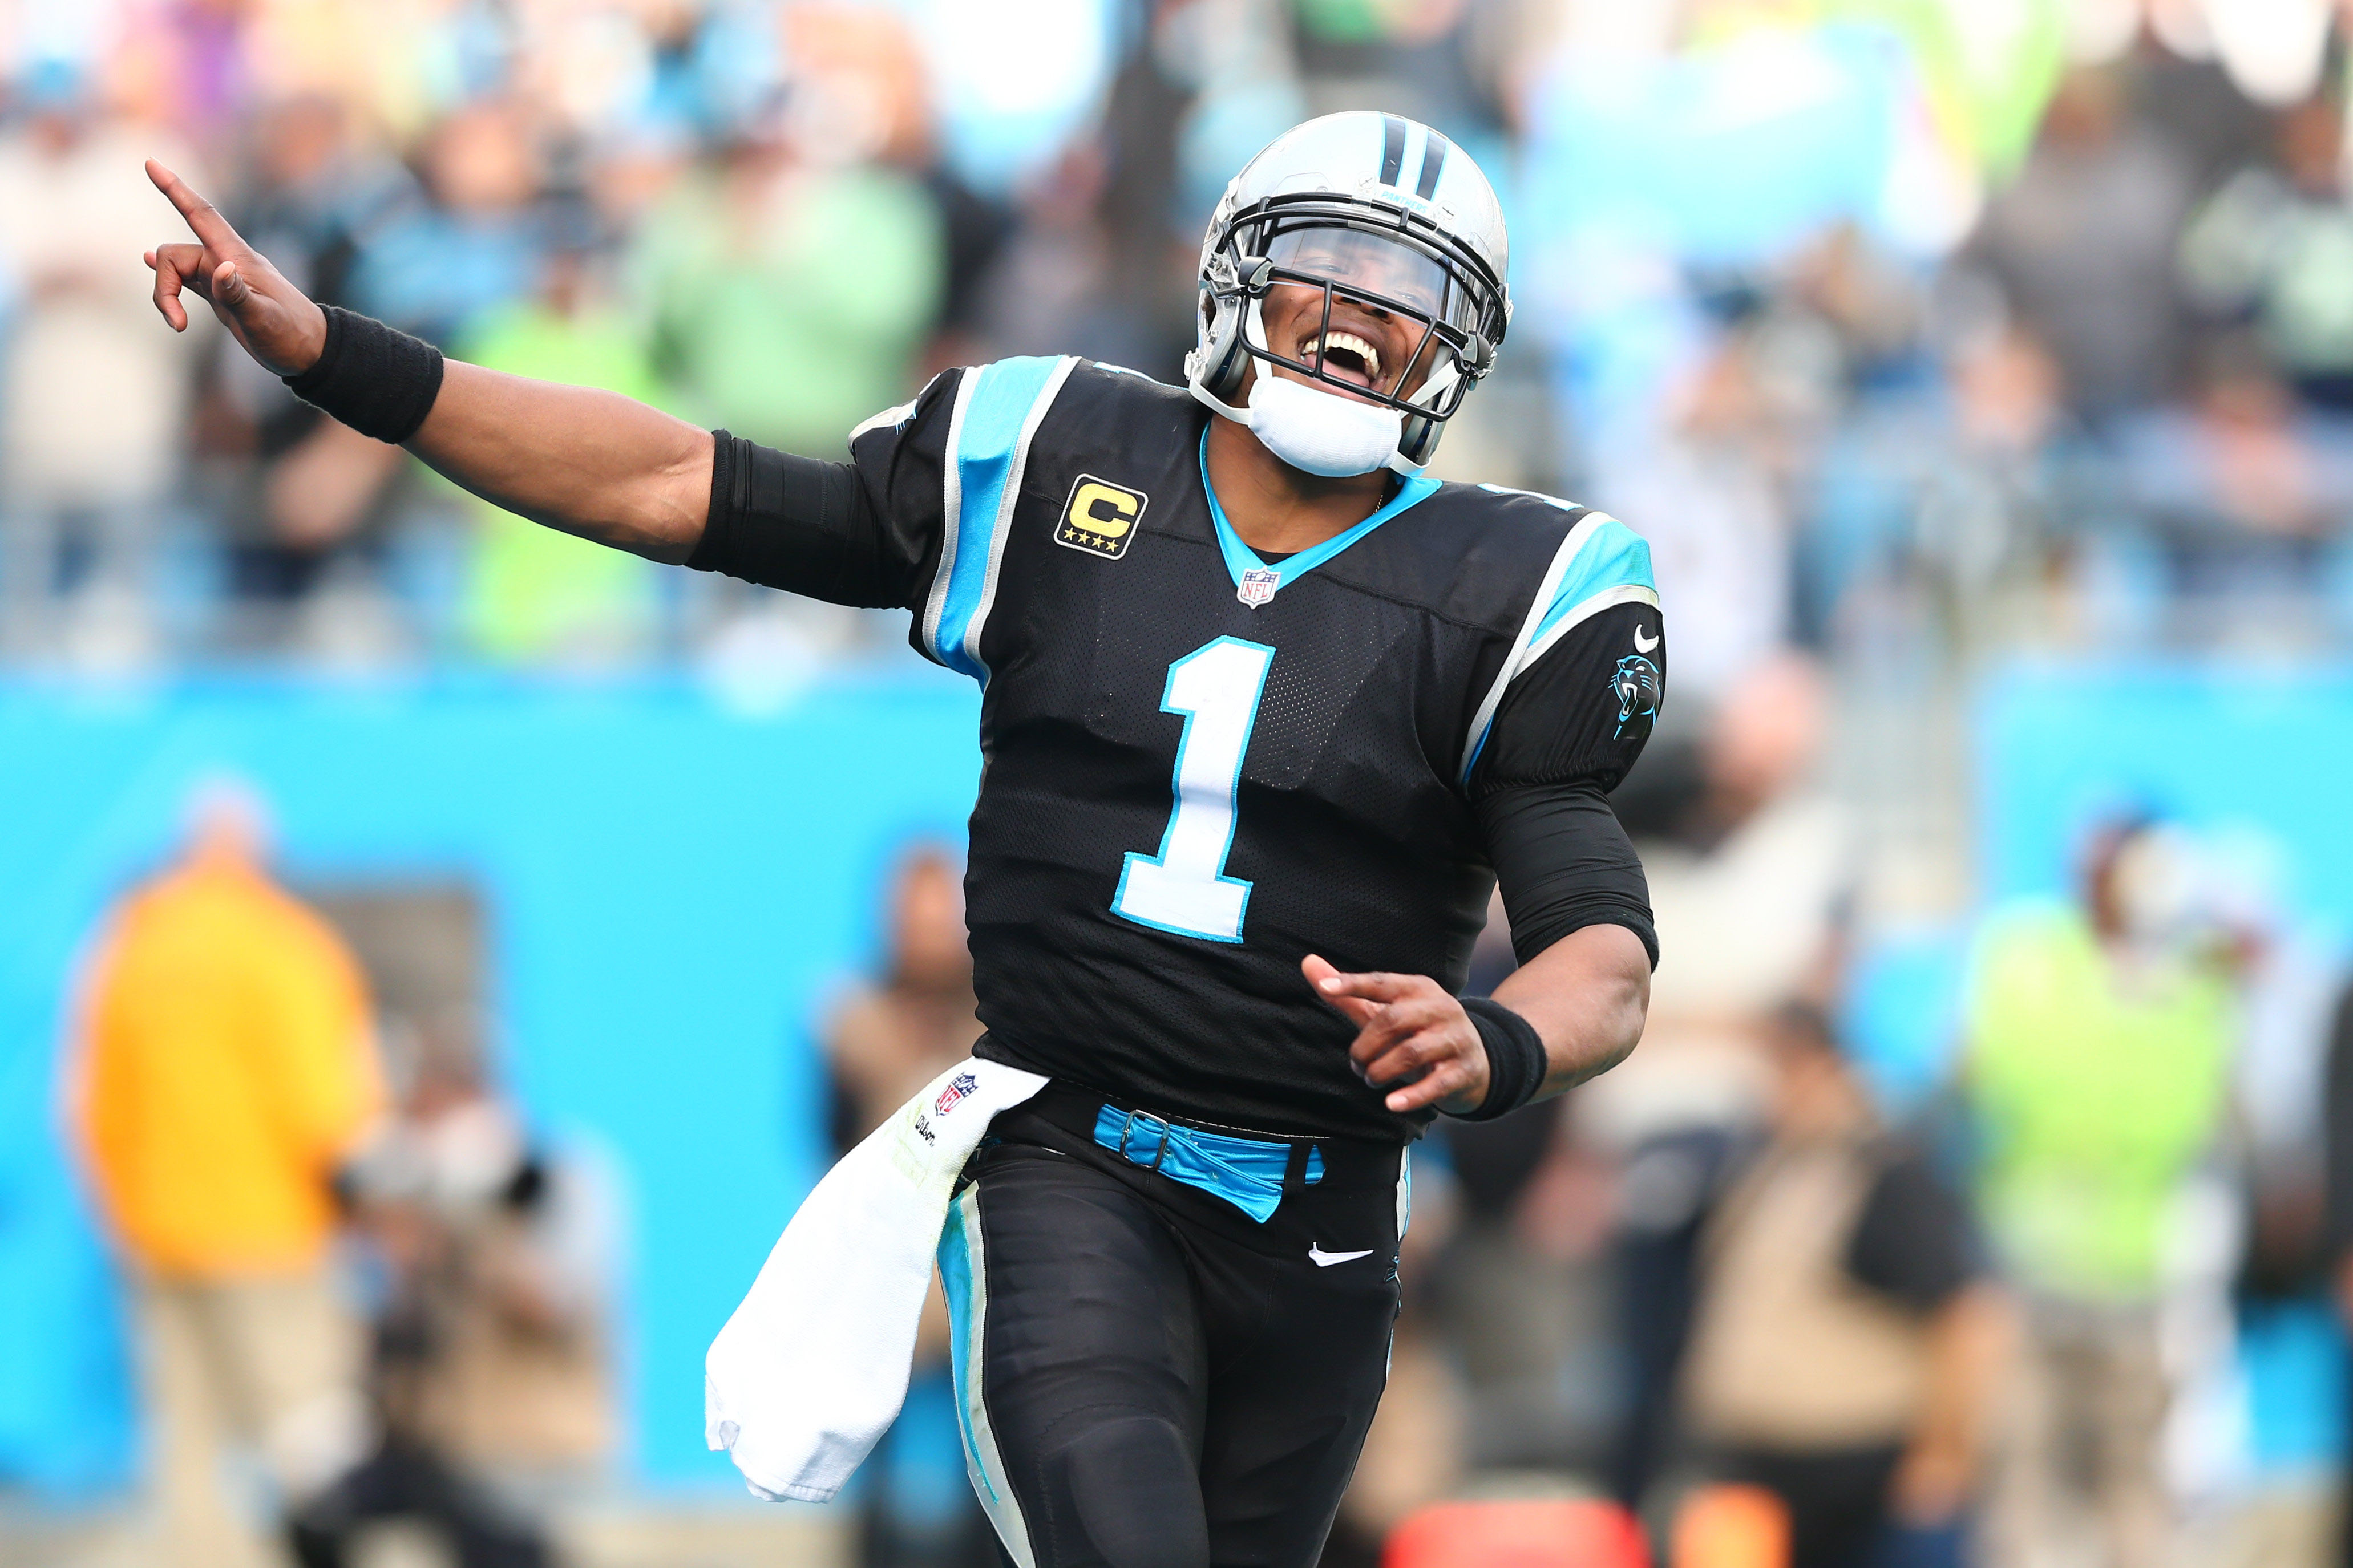 Report: Patriots Don't Have 'Any Immediate Interest' in QB Cam Newton